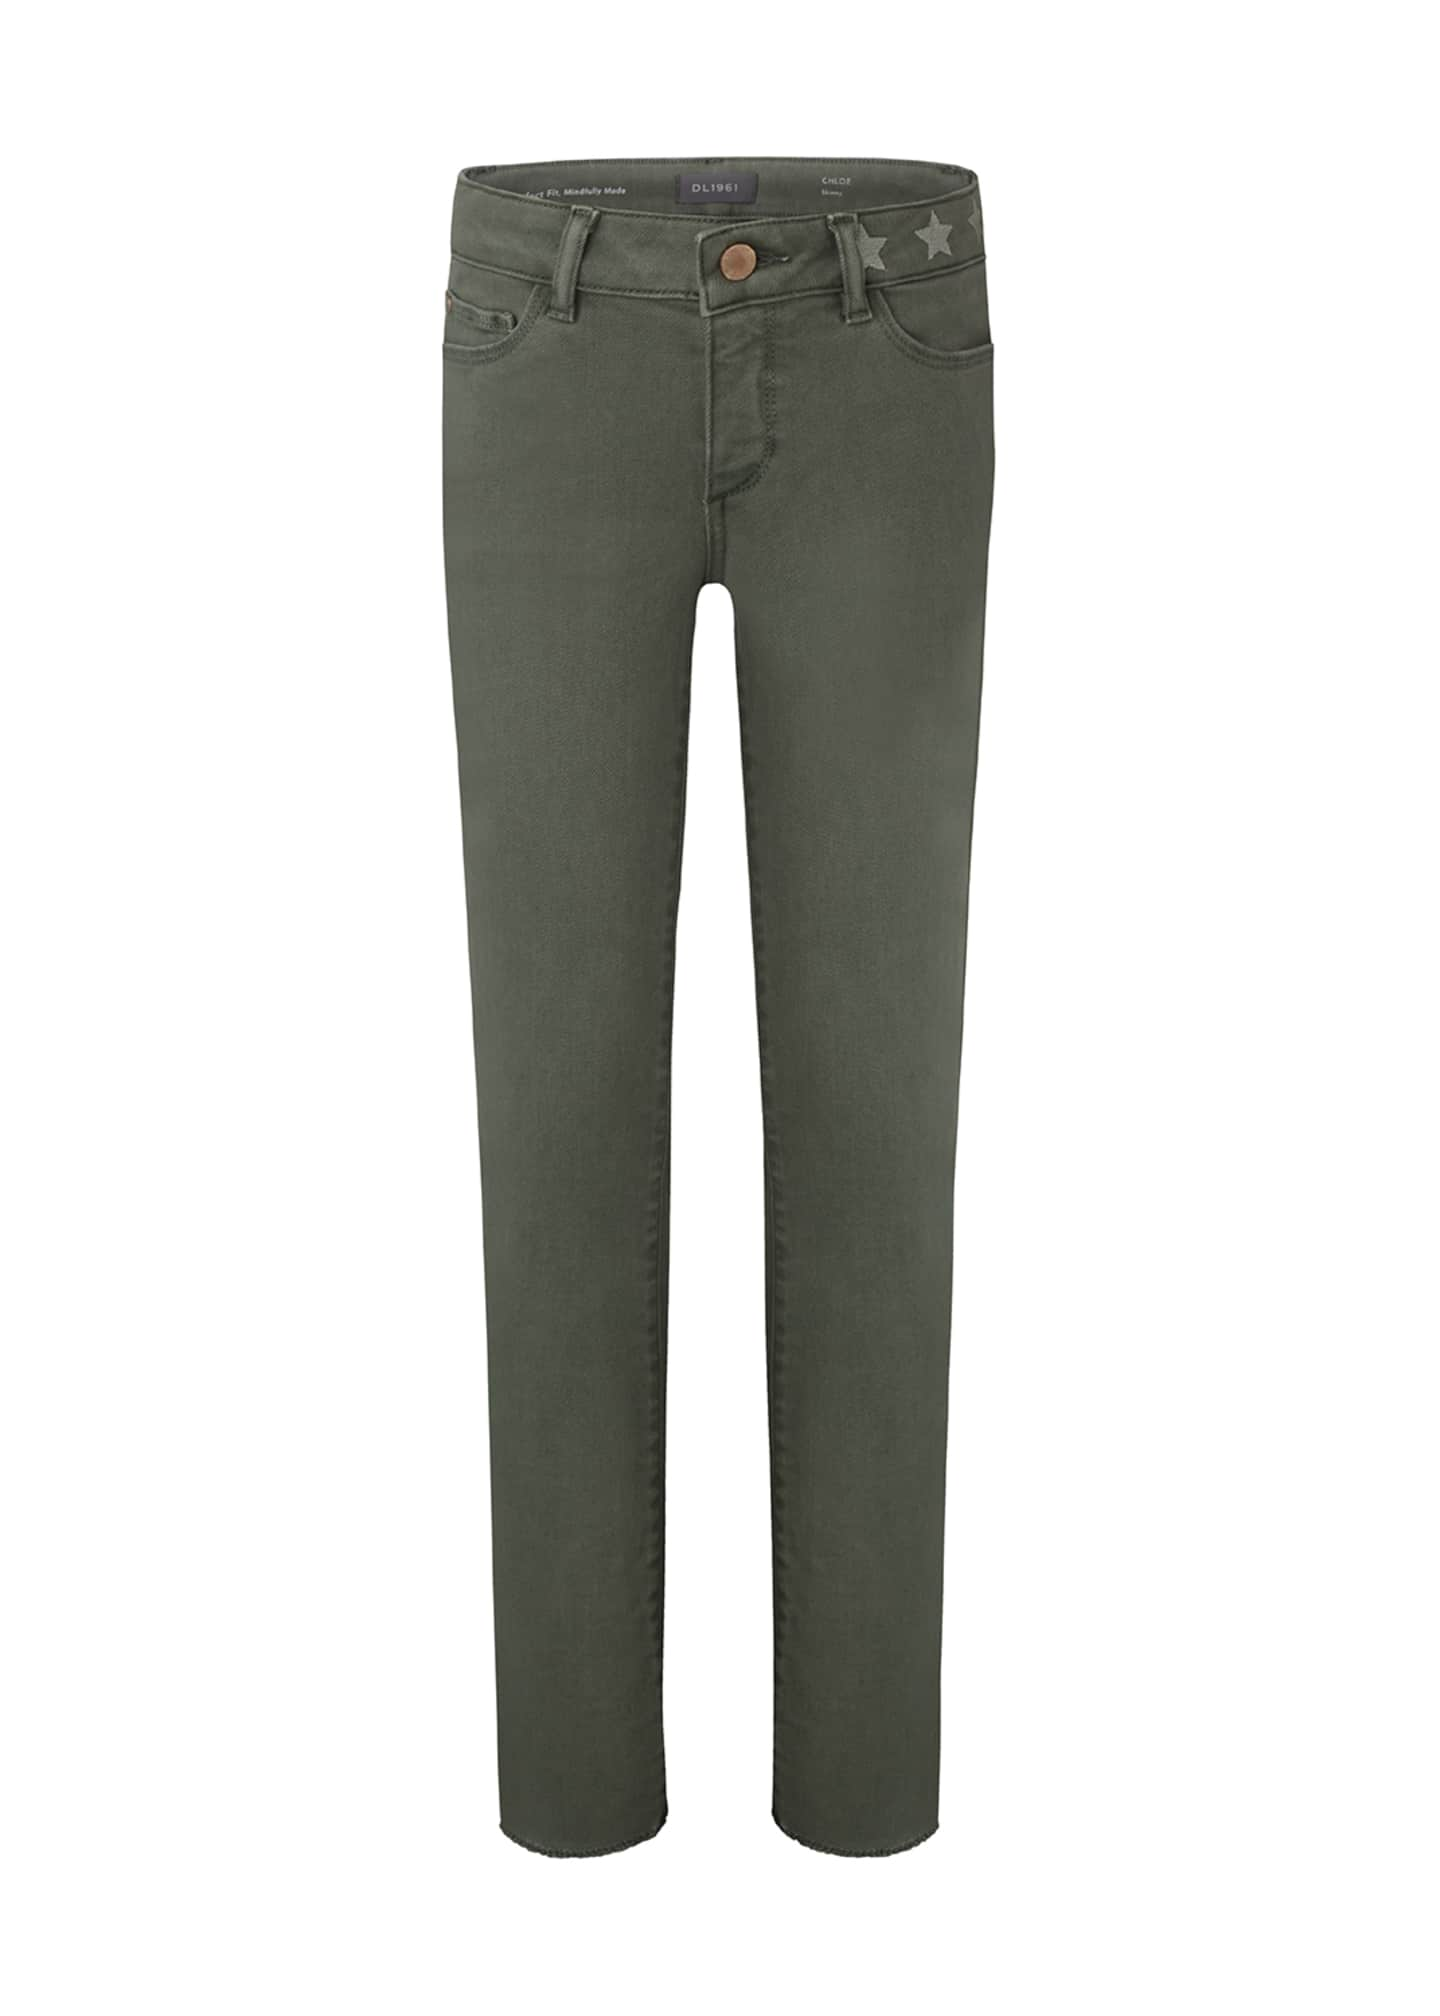 Image 1 of 3: Girl's Chloe Skinny Raw Hem Side Stripe Skinny Denim Jeans, Size 7-16